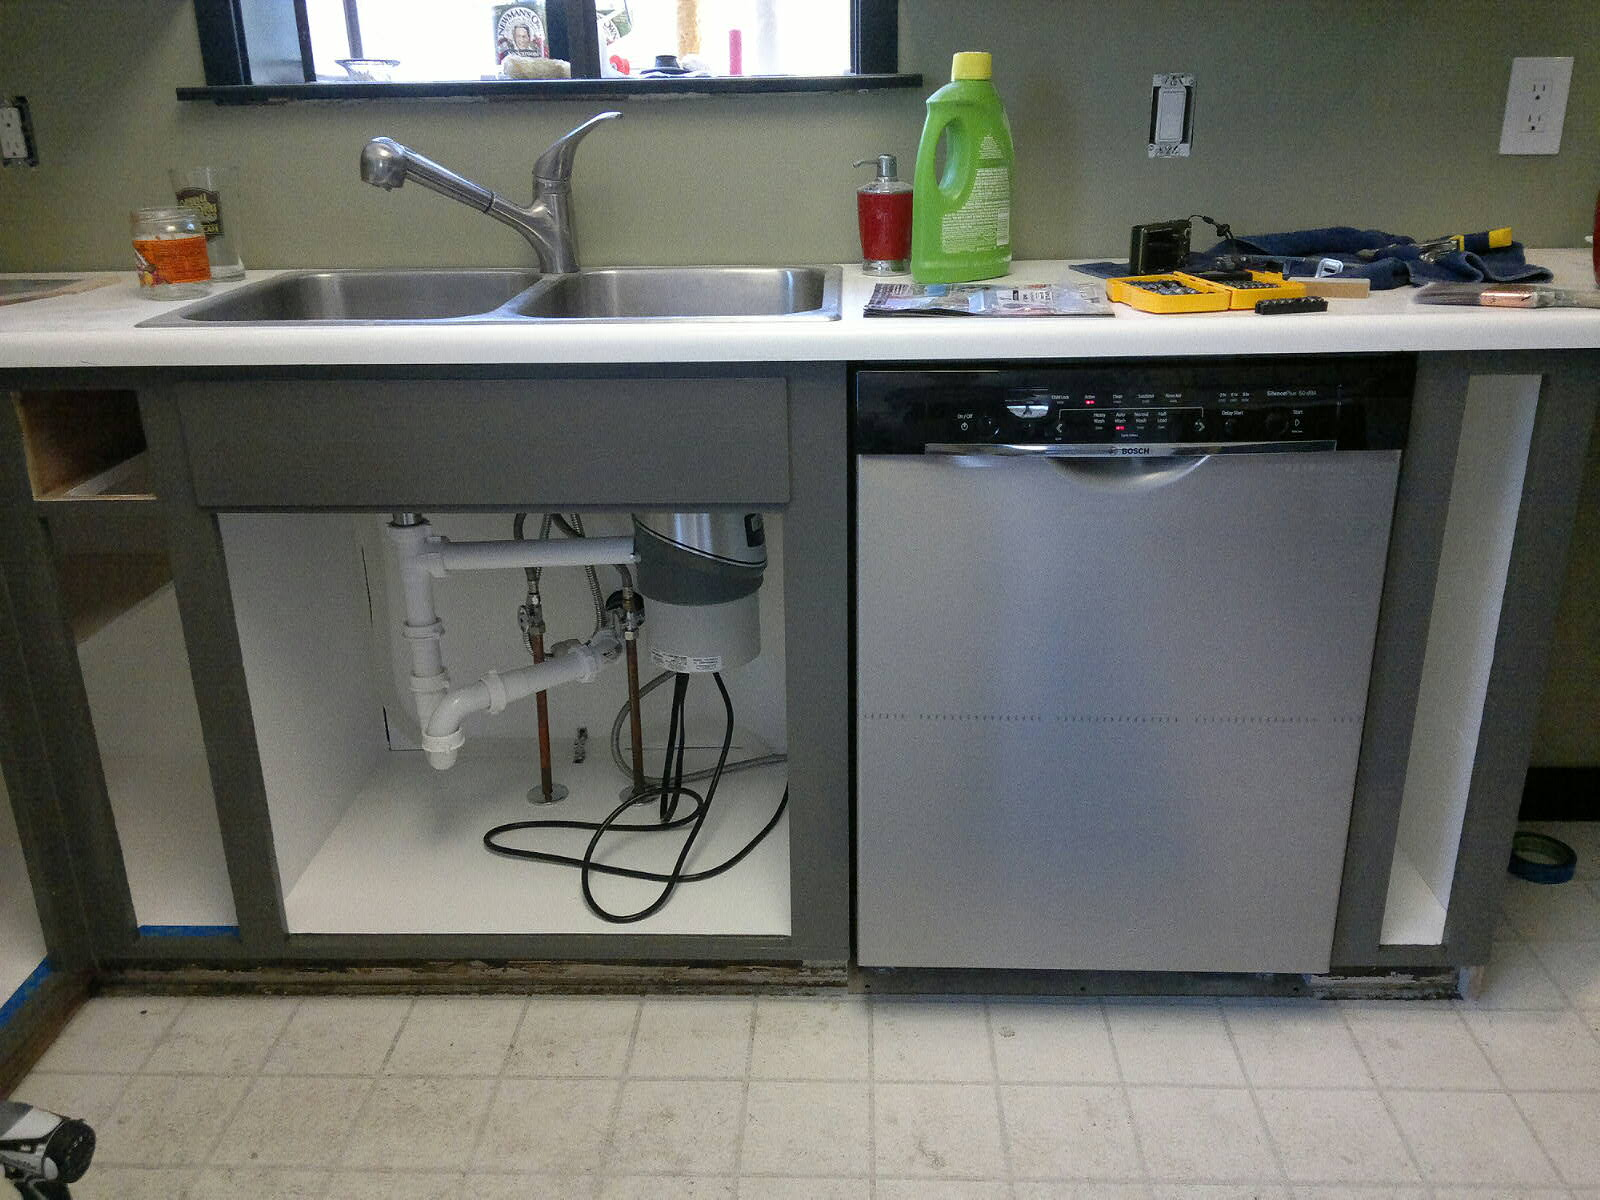 Installing A Full Size Dishwasher In Old Shallow Cabinets